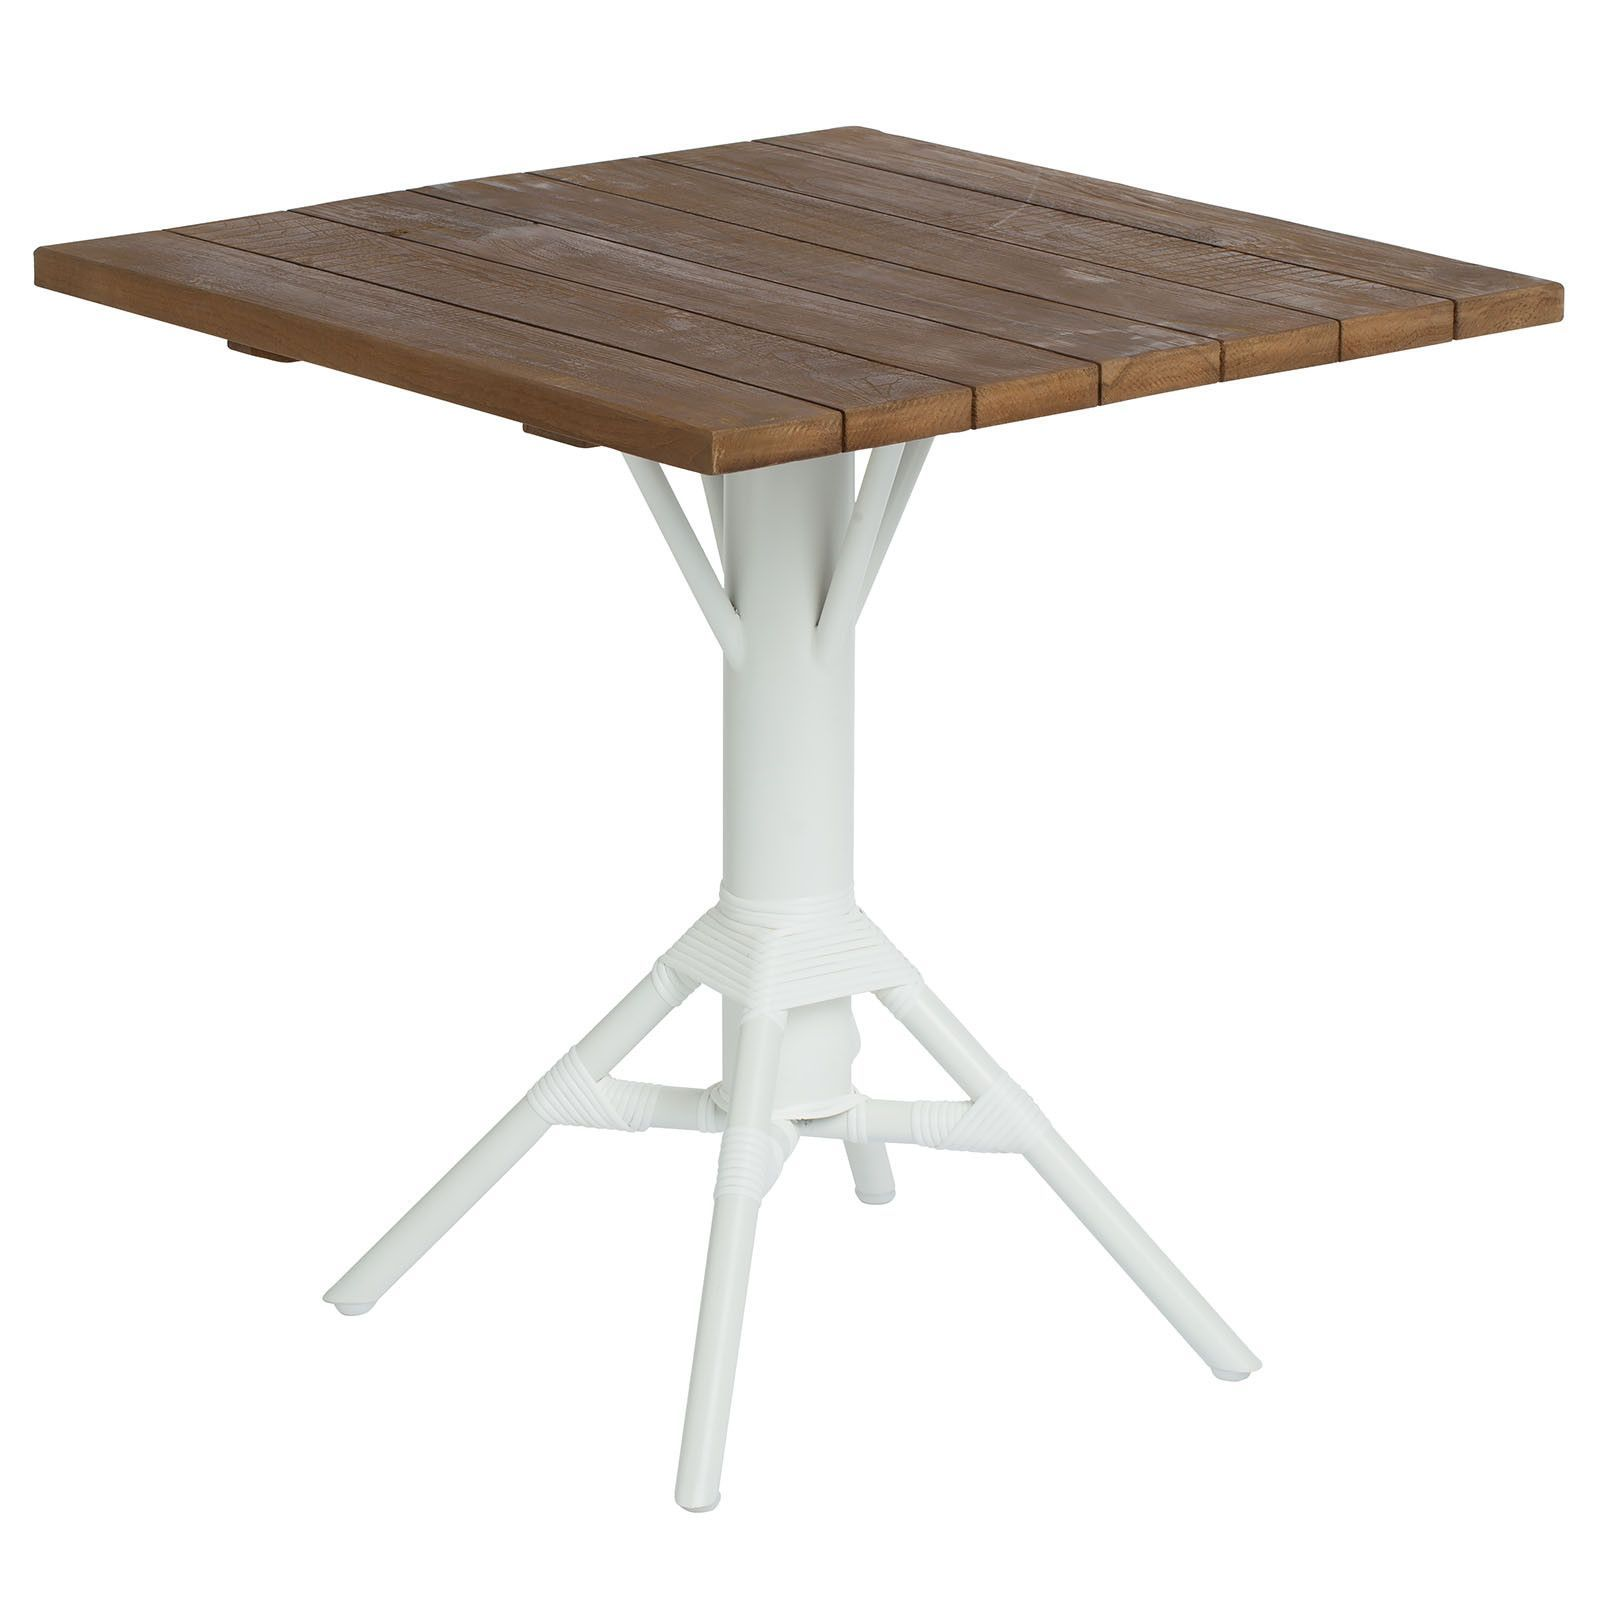 "27.56"" Nicole Cafe Table w/ Square Teak Tabletop"